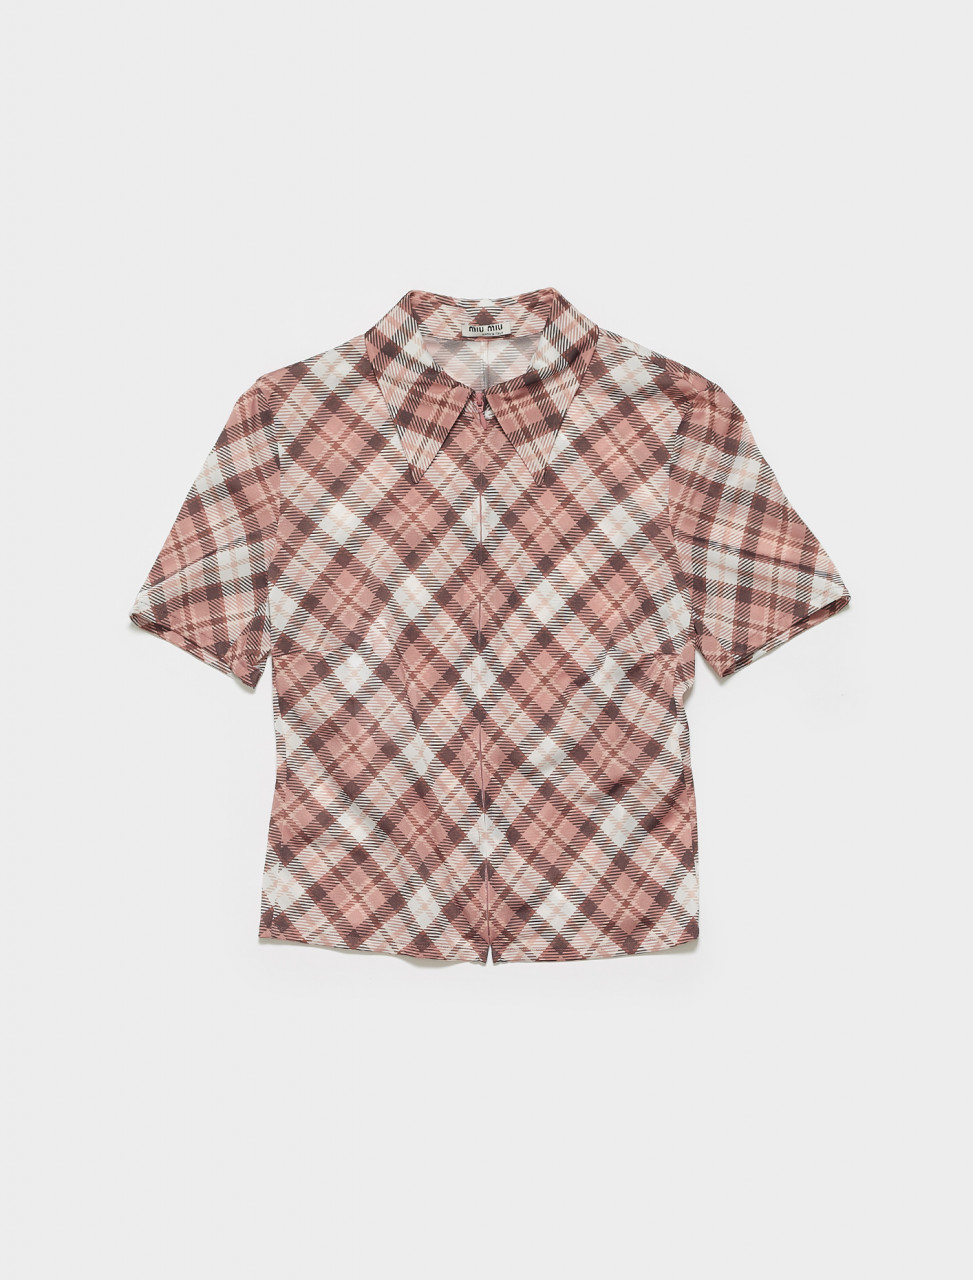 MK1542-F0AL2 MIU MIU PLAID PRINTED TIGHT KNIT SHIRT IN ALABASTER